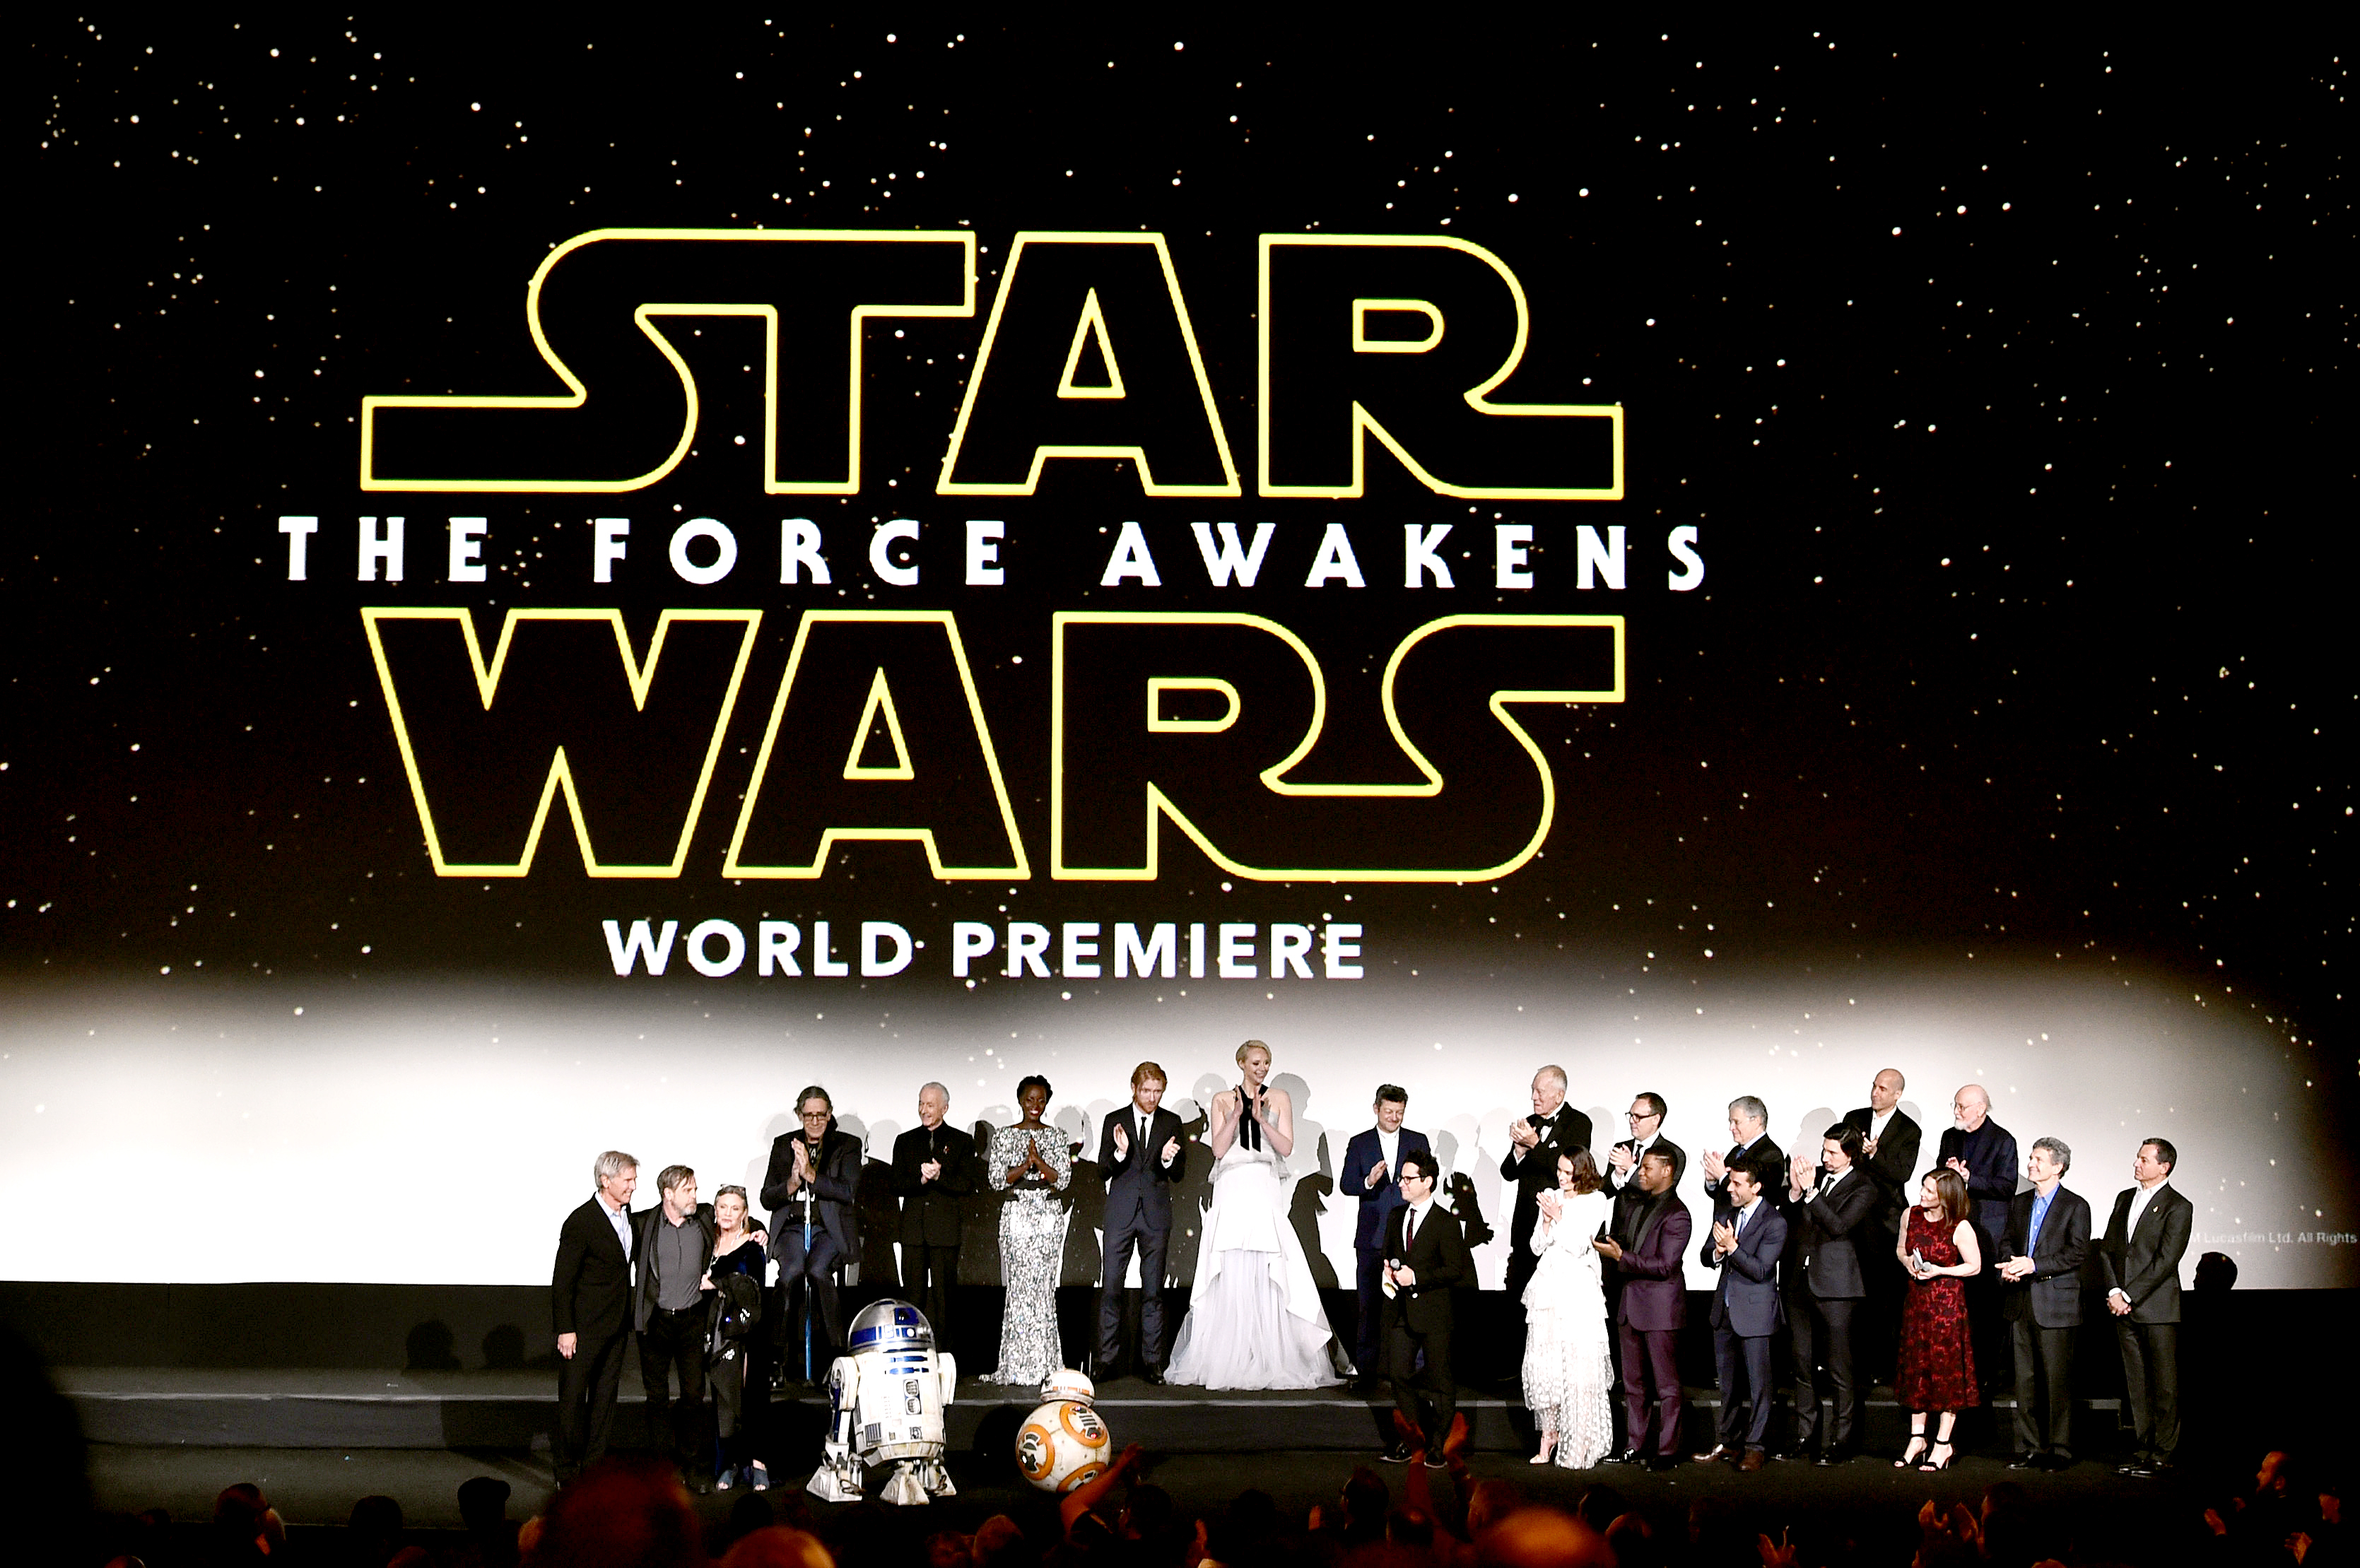 The cast and crew speak onstage during the World Premiere of Star Wars: The Force Awakens.